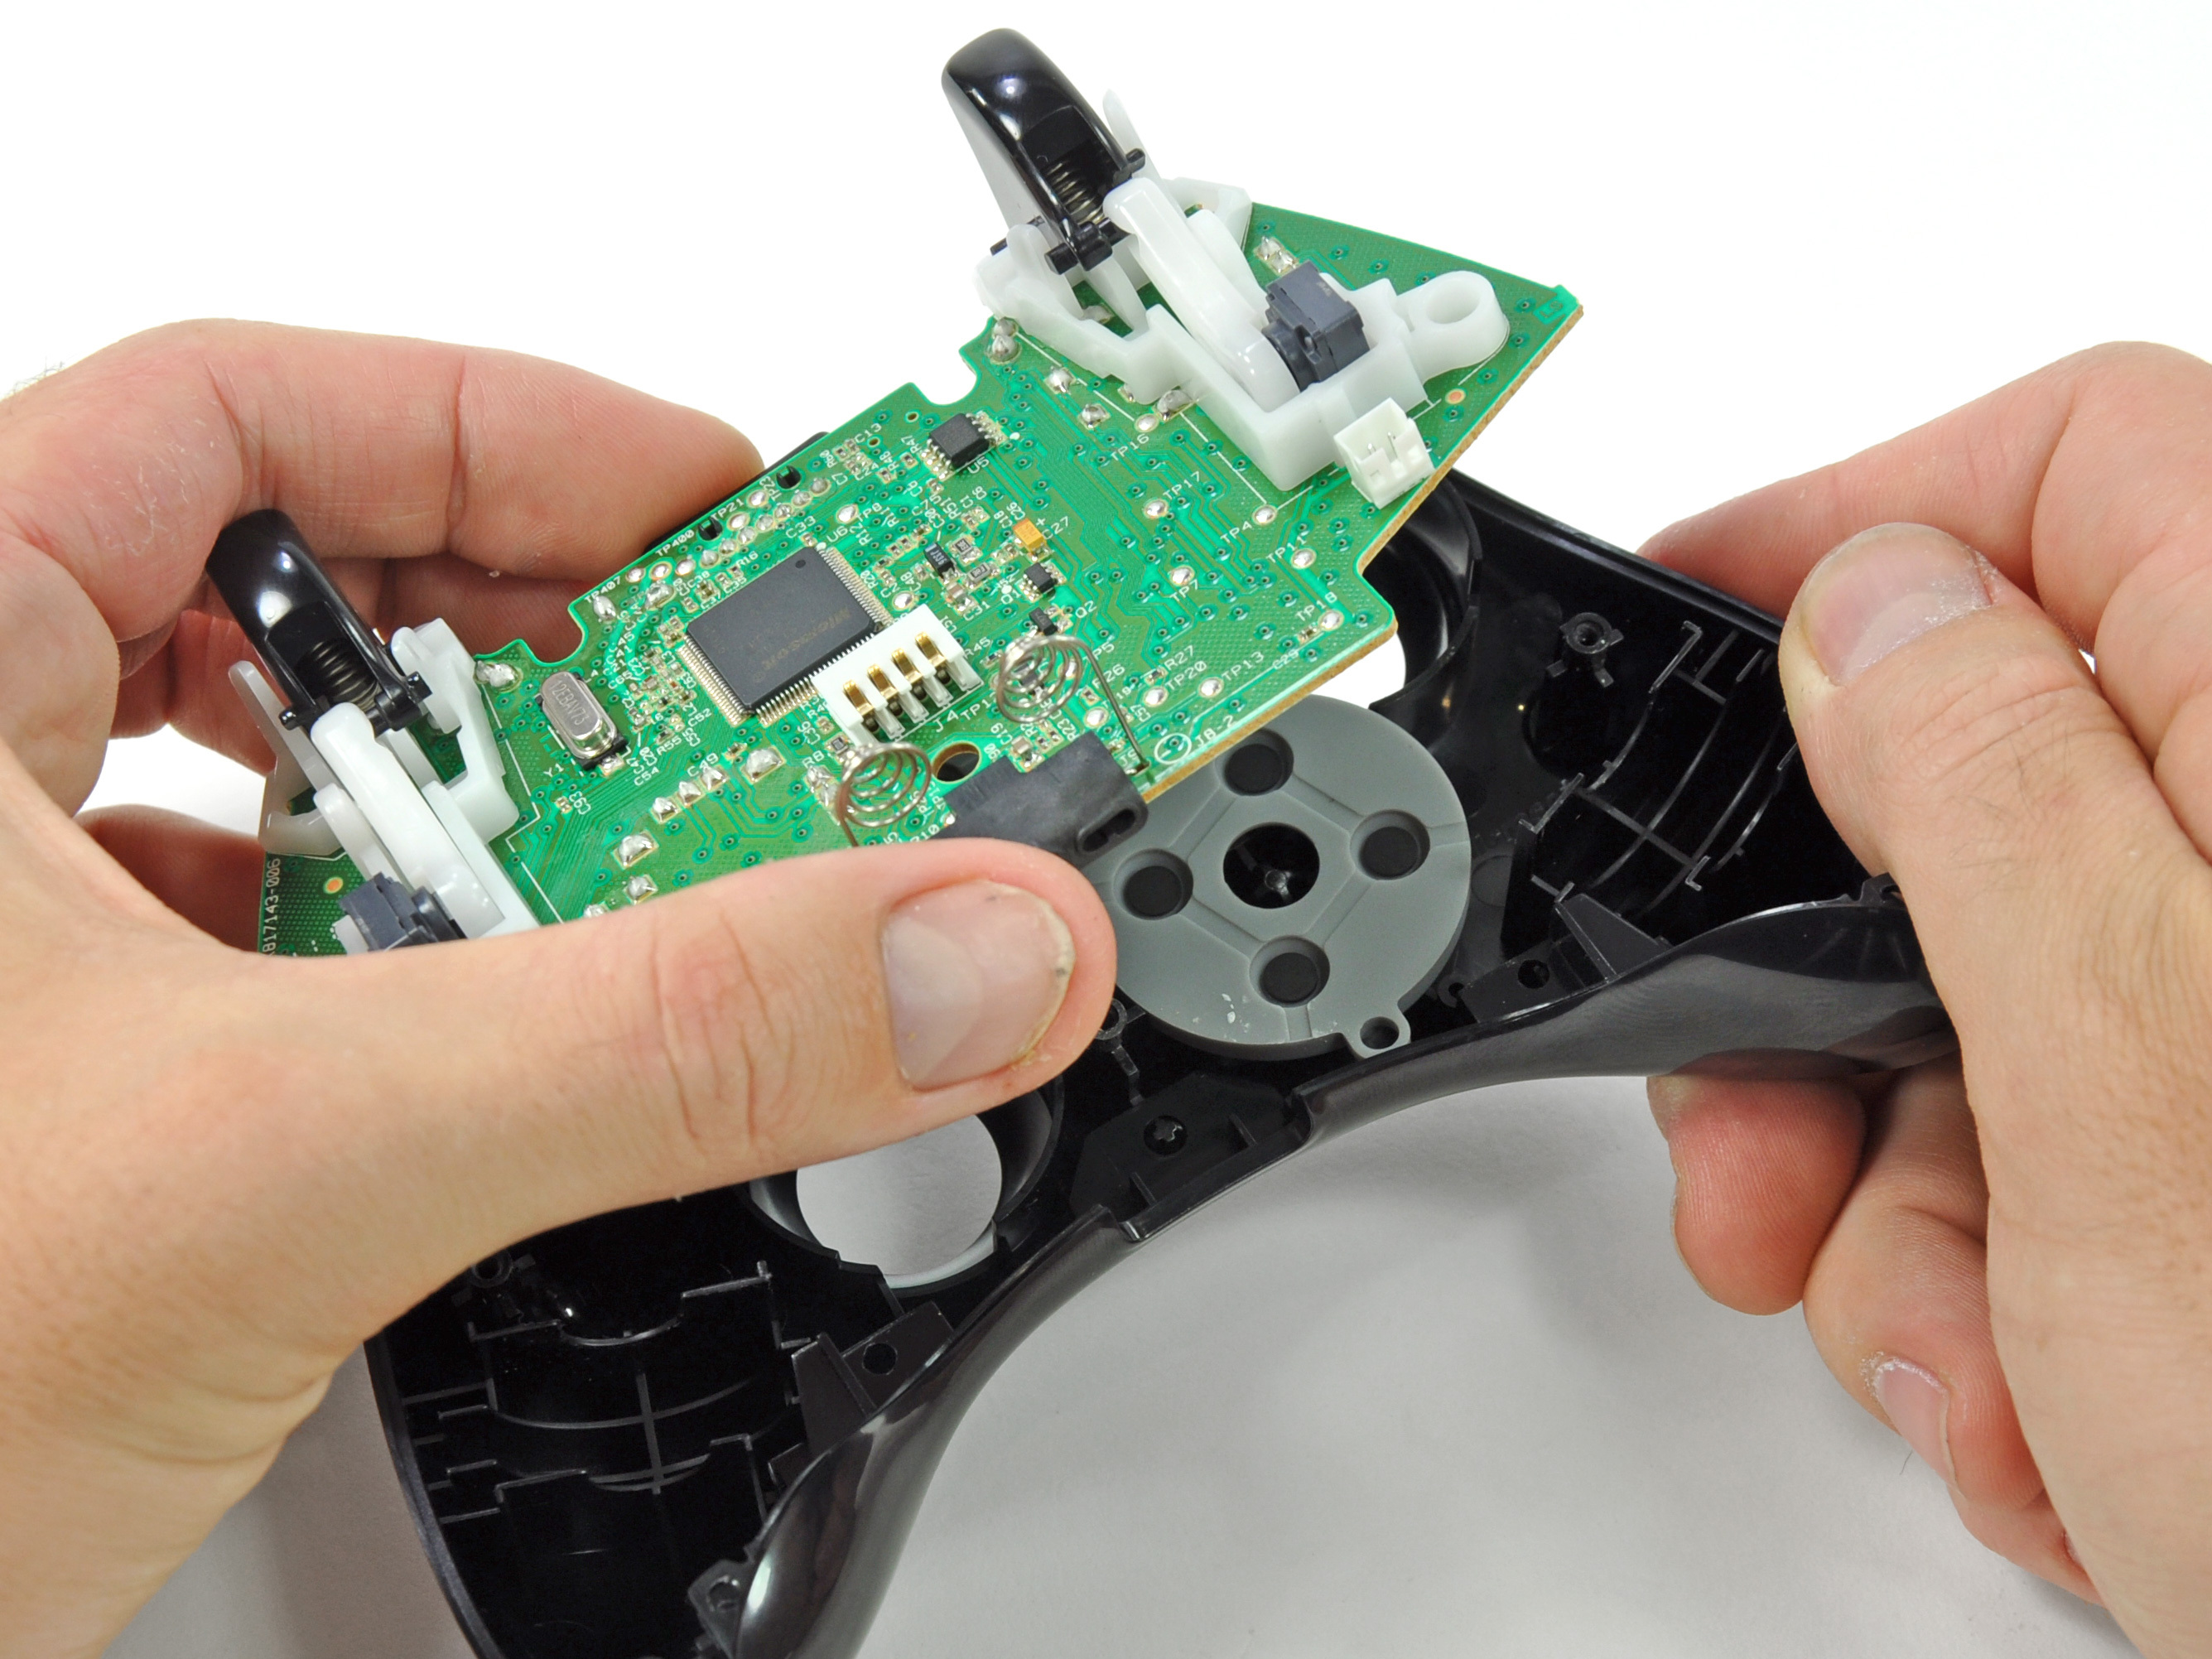 Xbox 360 Wireless Controller Repair Ifixit Electronic Circuit Contol Boards Logic Board Replacement